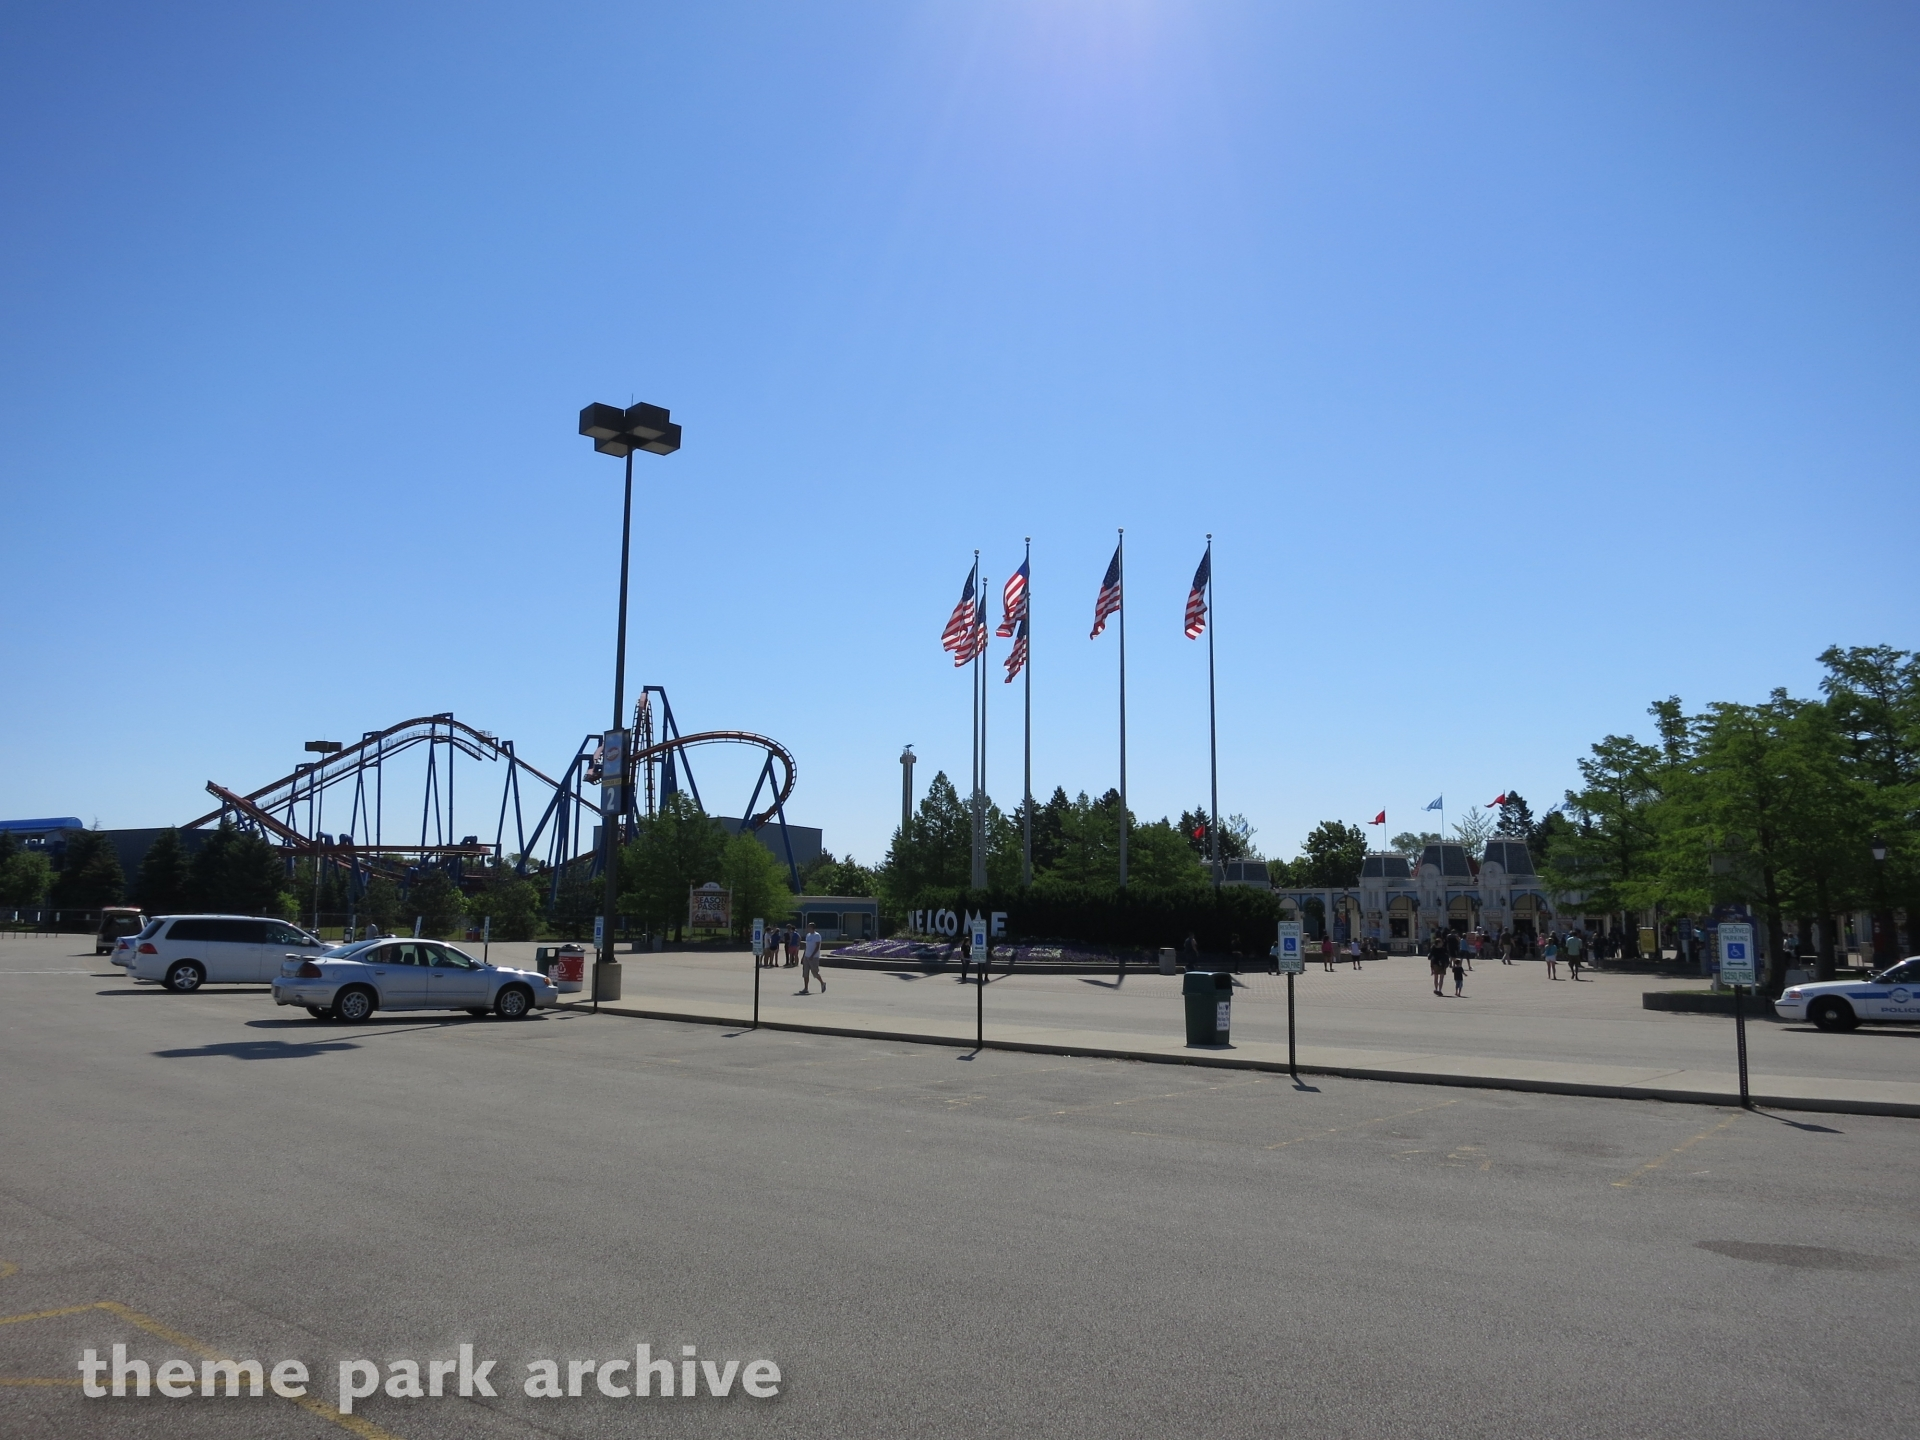 Carousel Plaza at Six Flags Great America